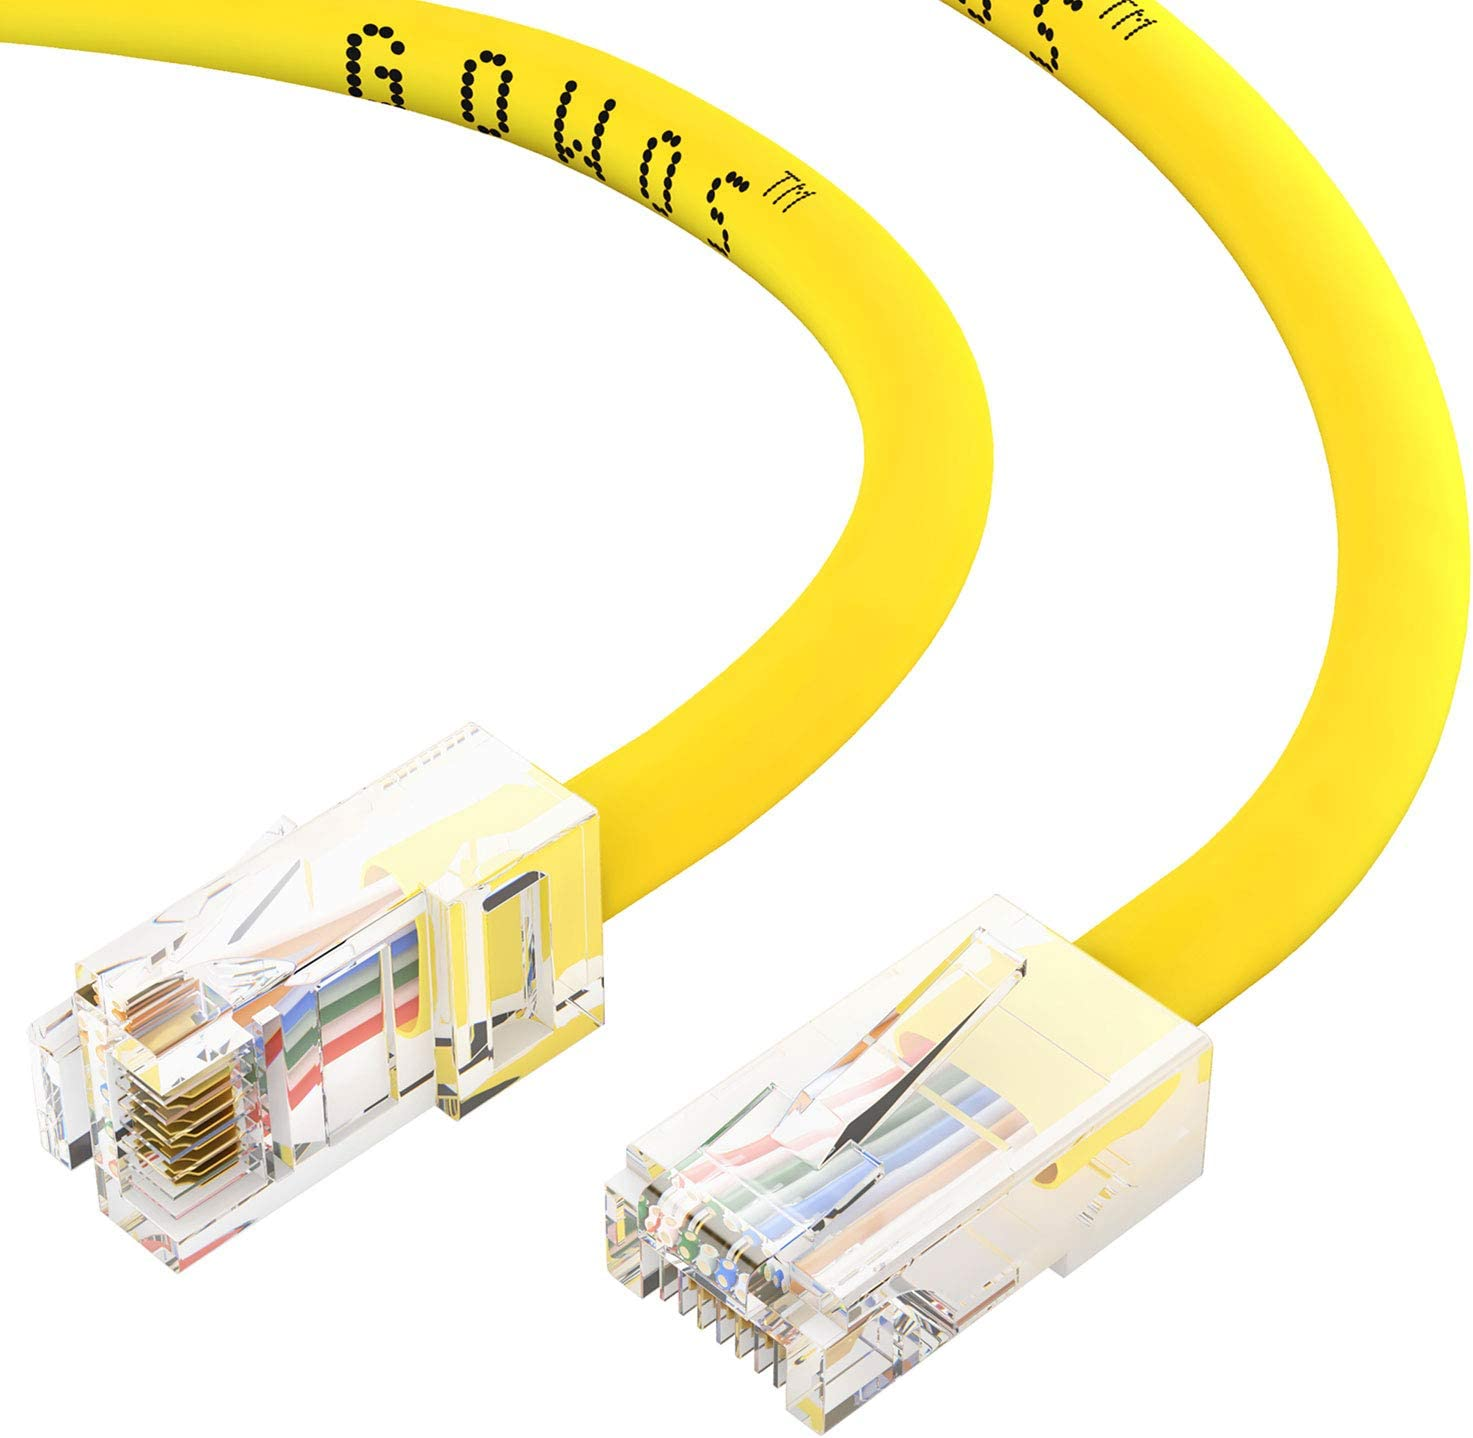 CABLECHOICE 10-Pack Cat5e Challenge the lowest price of Japan Ethernet Cable 5 ☆ popular Feet Yellow 7 - UTP